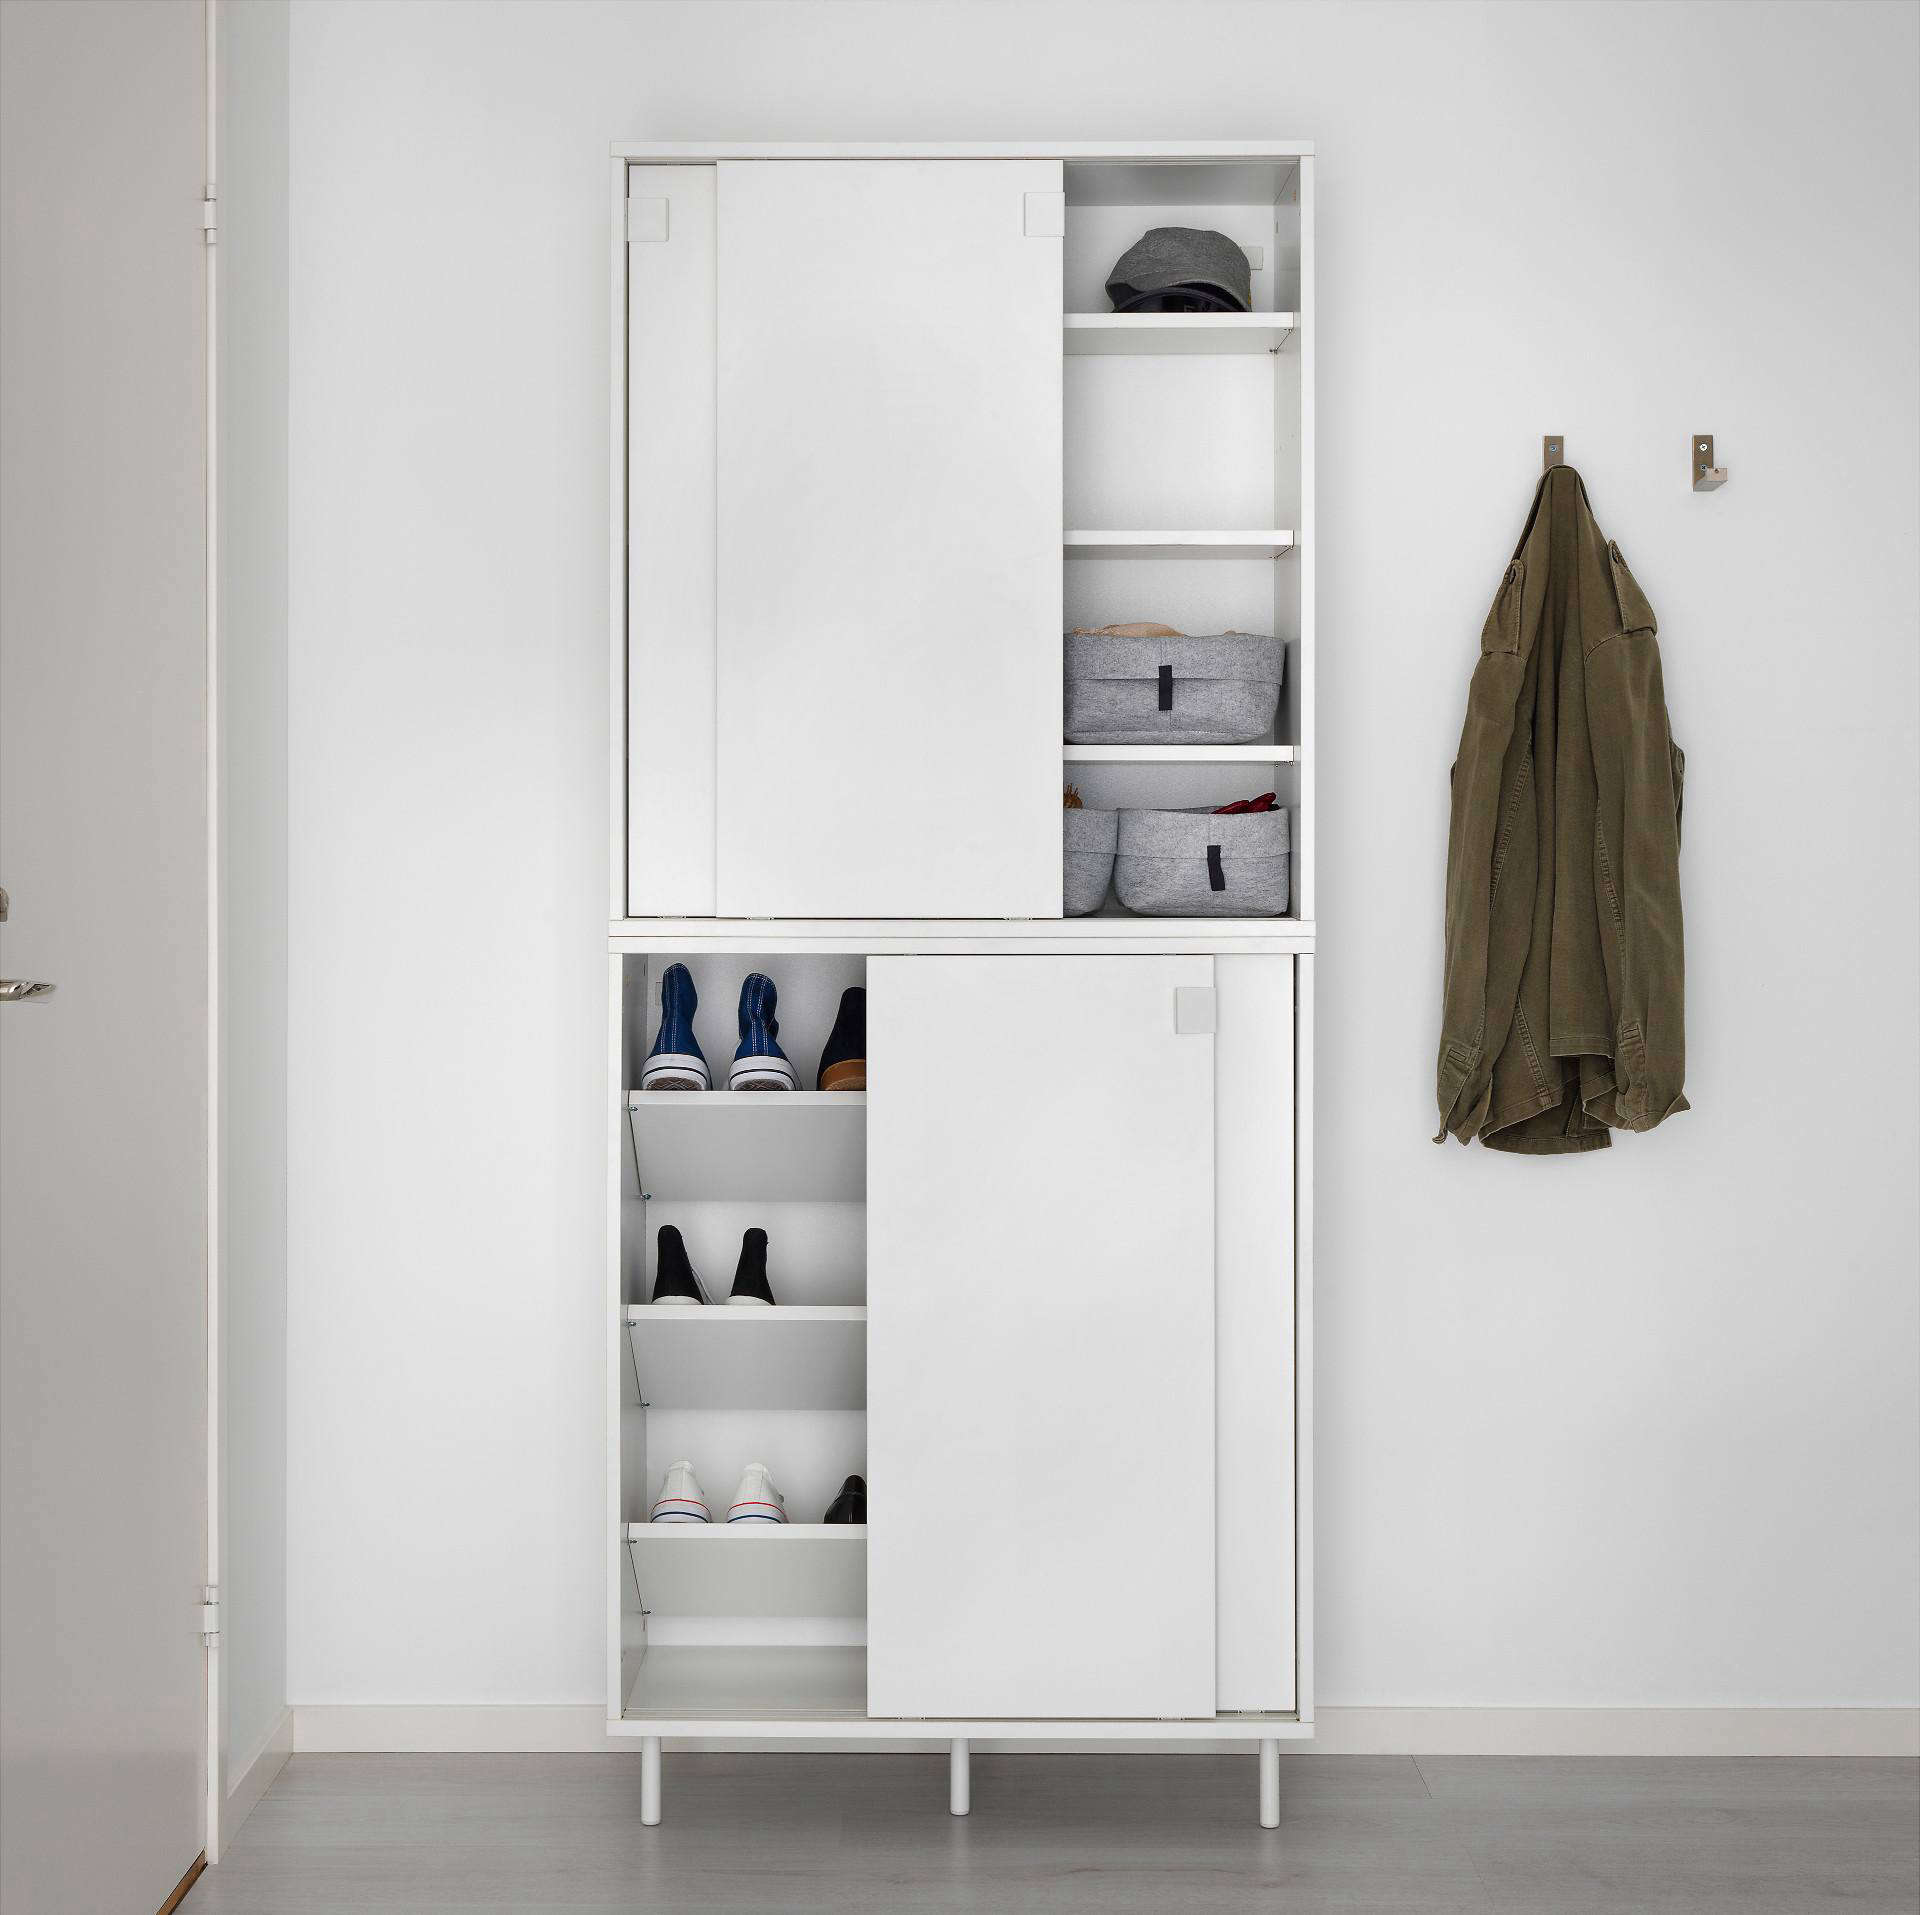 Ikea Entryway Storage Solutions For Minimalists On A Budget The Organized Home